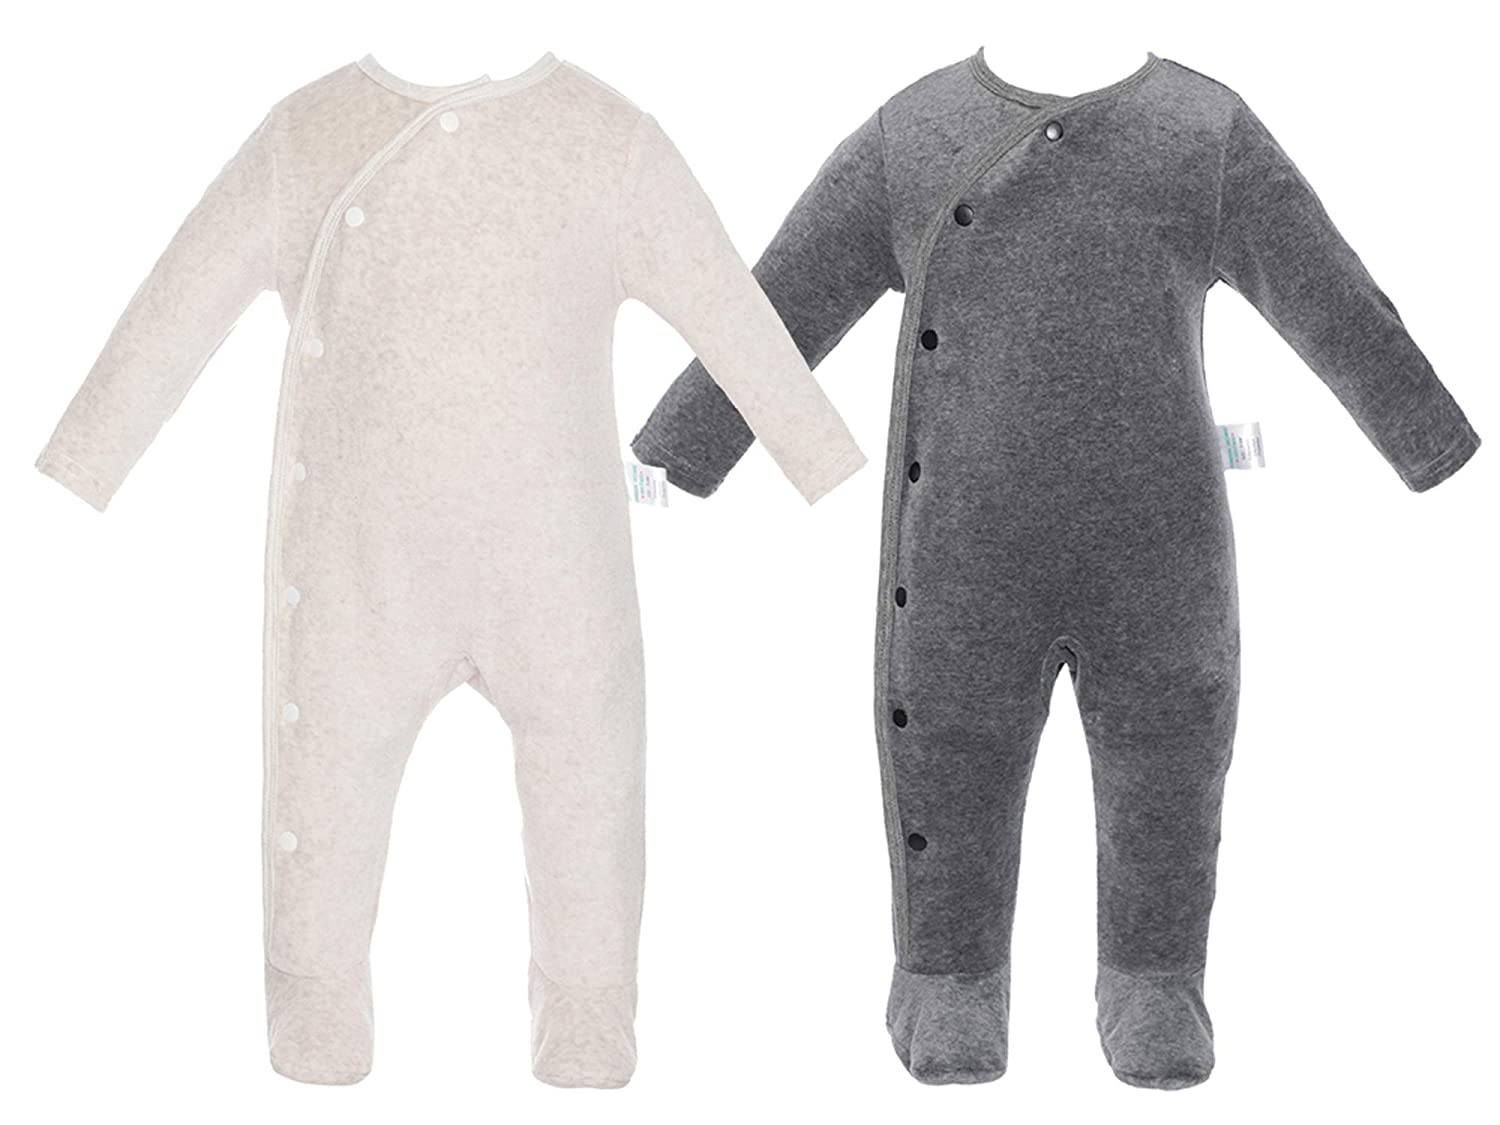 2 Pack Baby Boy Footies Romper, Long Sleeves NewBorn Toddler Bodysuit, Warm Infant Outfit